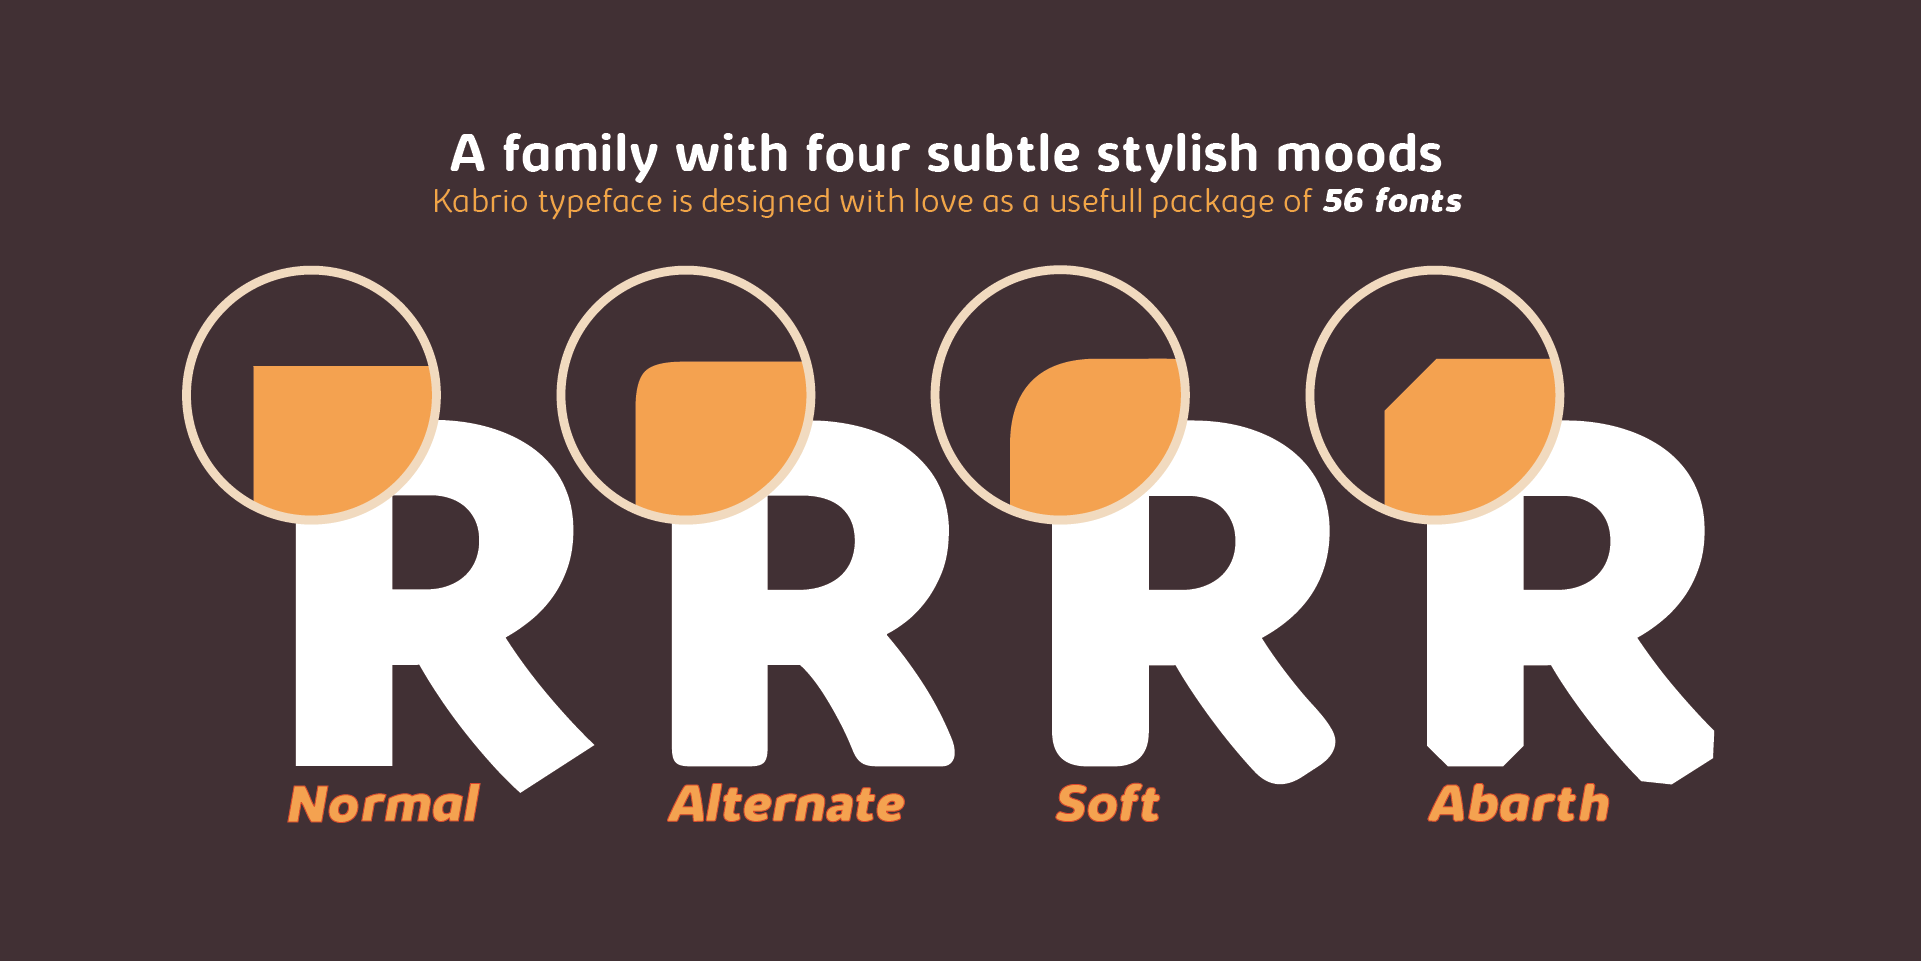 A family with four subtle stylish moods